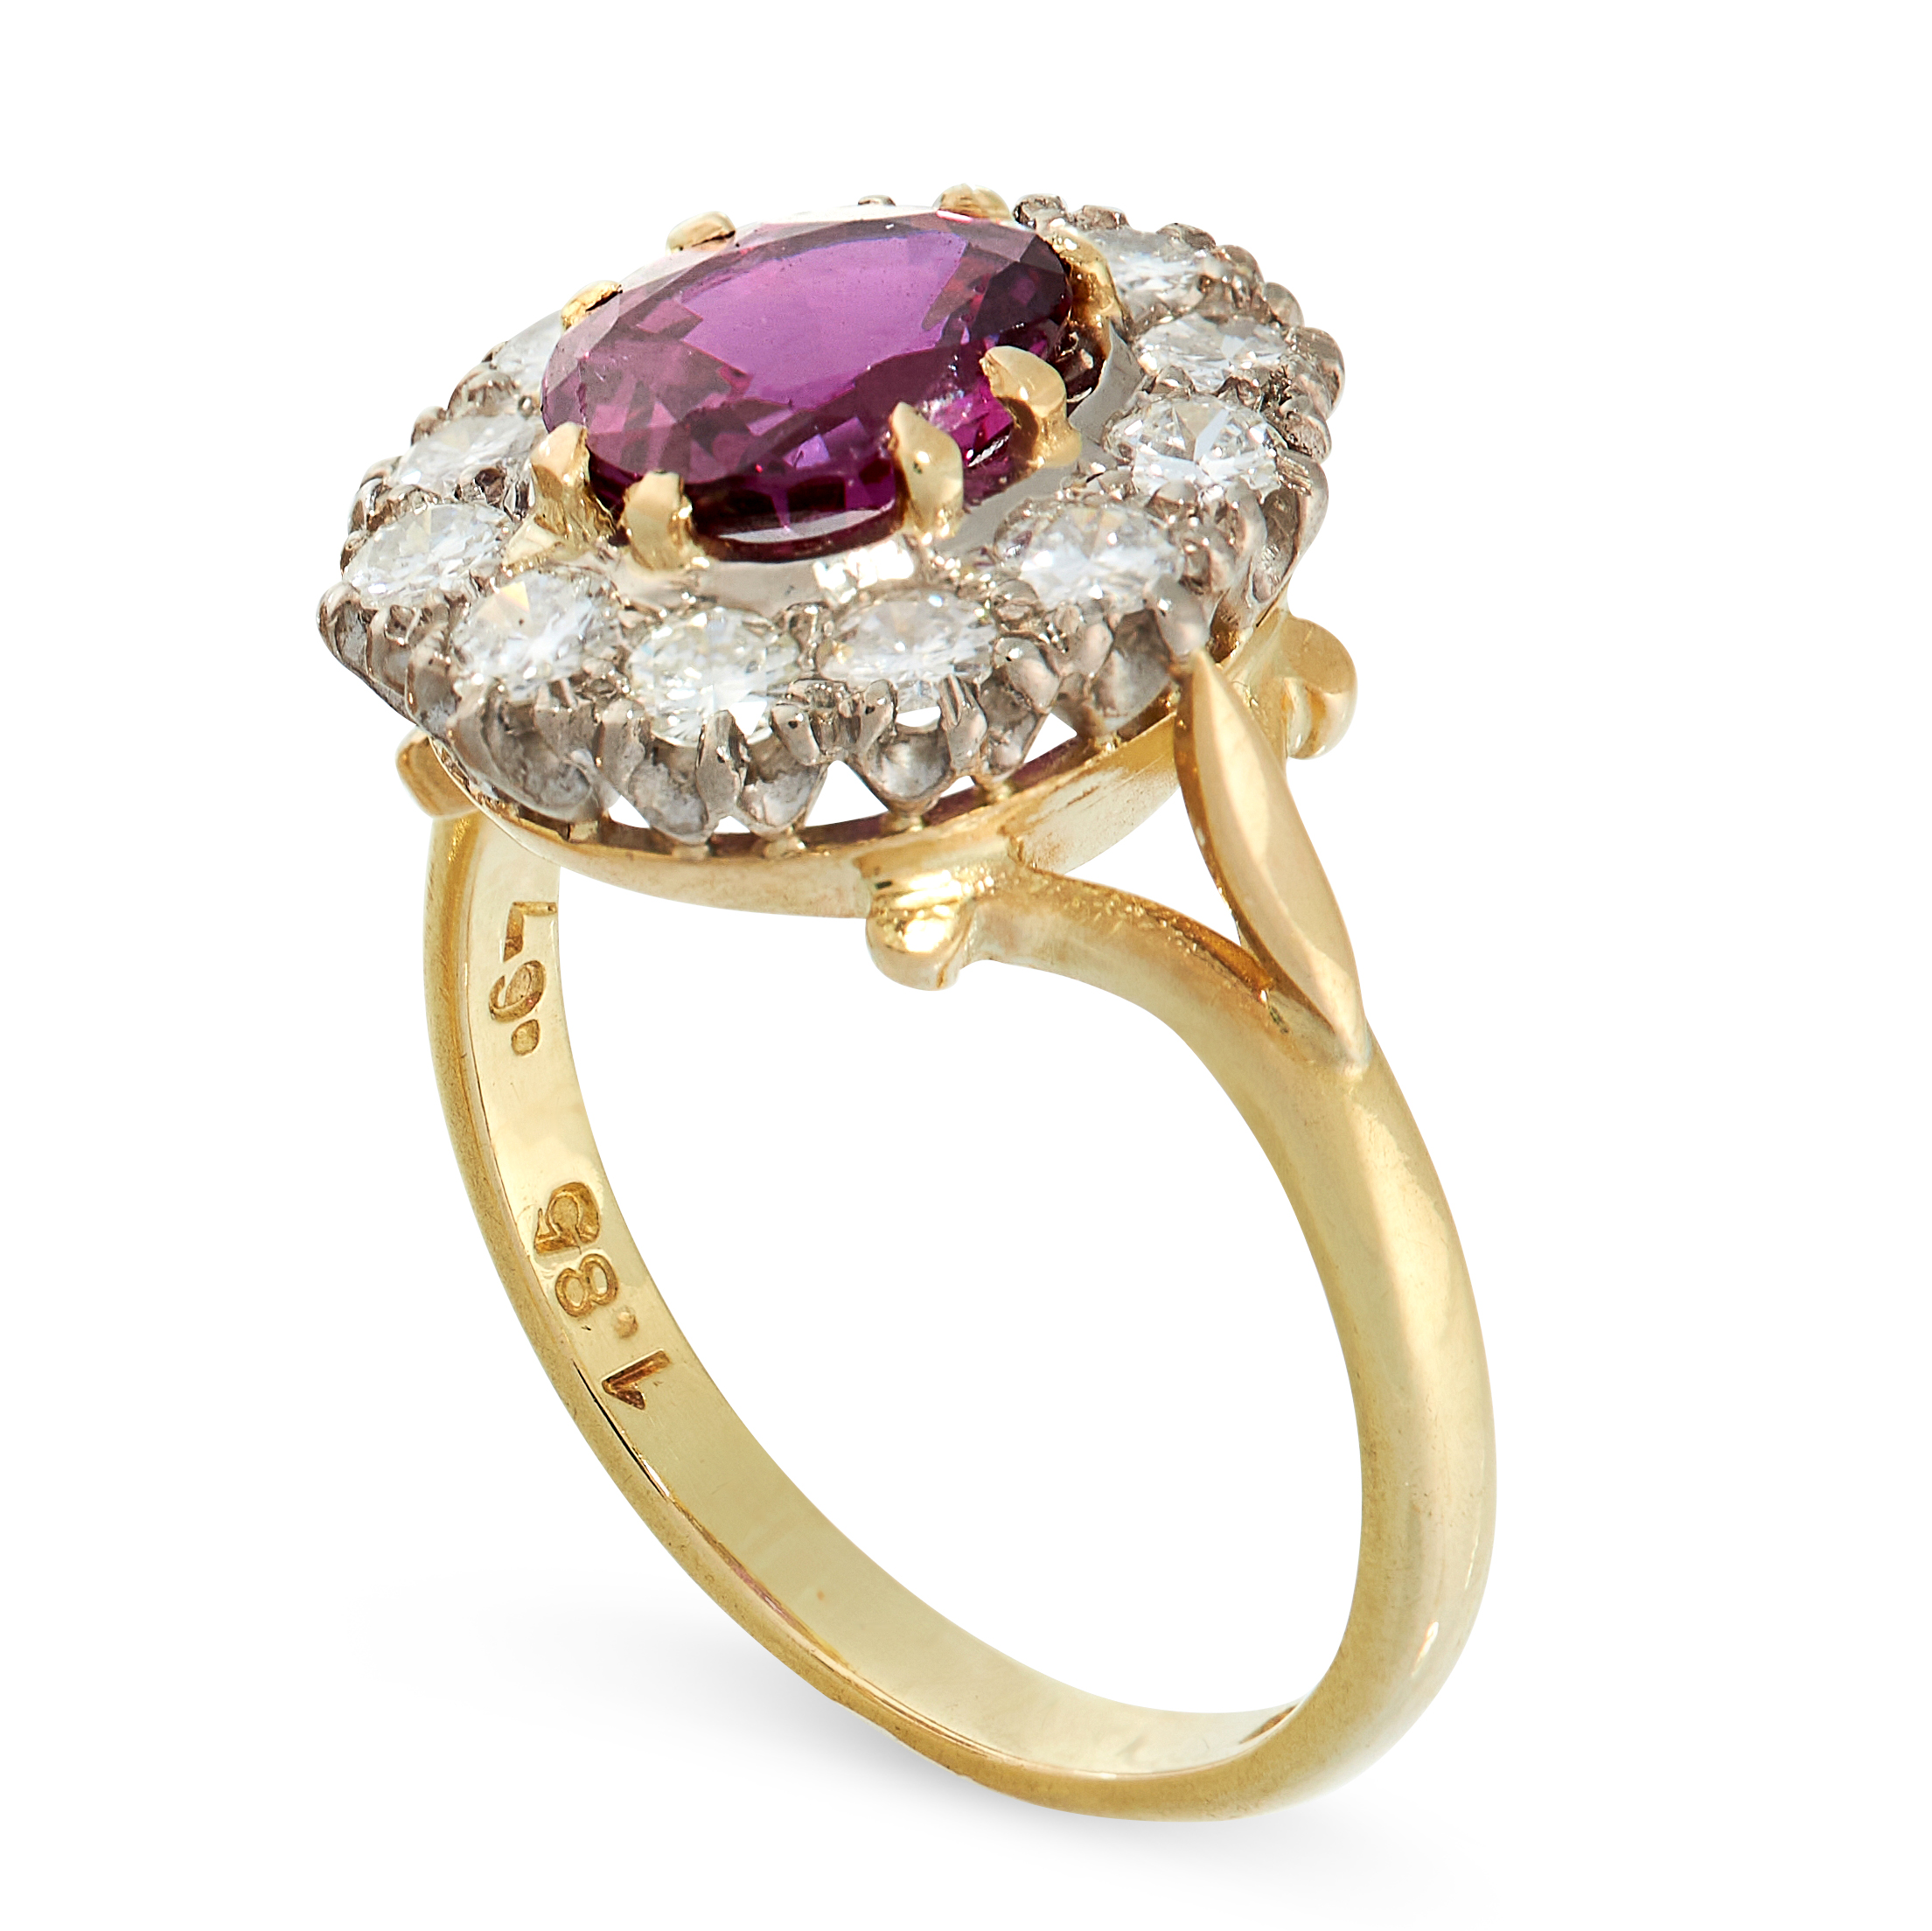 UNHEATED RUBY AND DIAMOND RING in 18ct yellow gold, in cluster form, set with a cushion cut ruby - Image 2 of 2